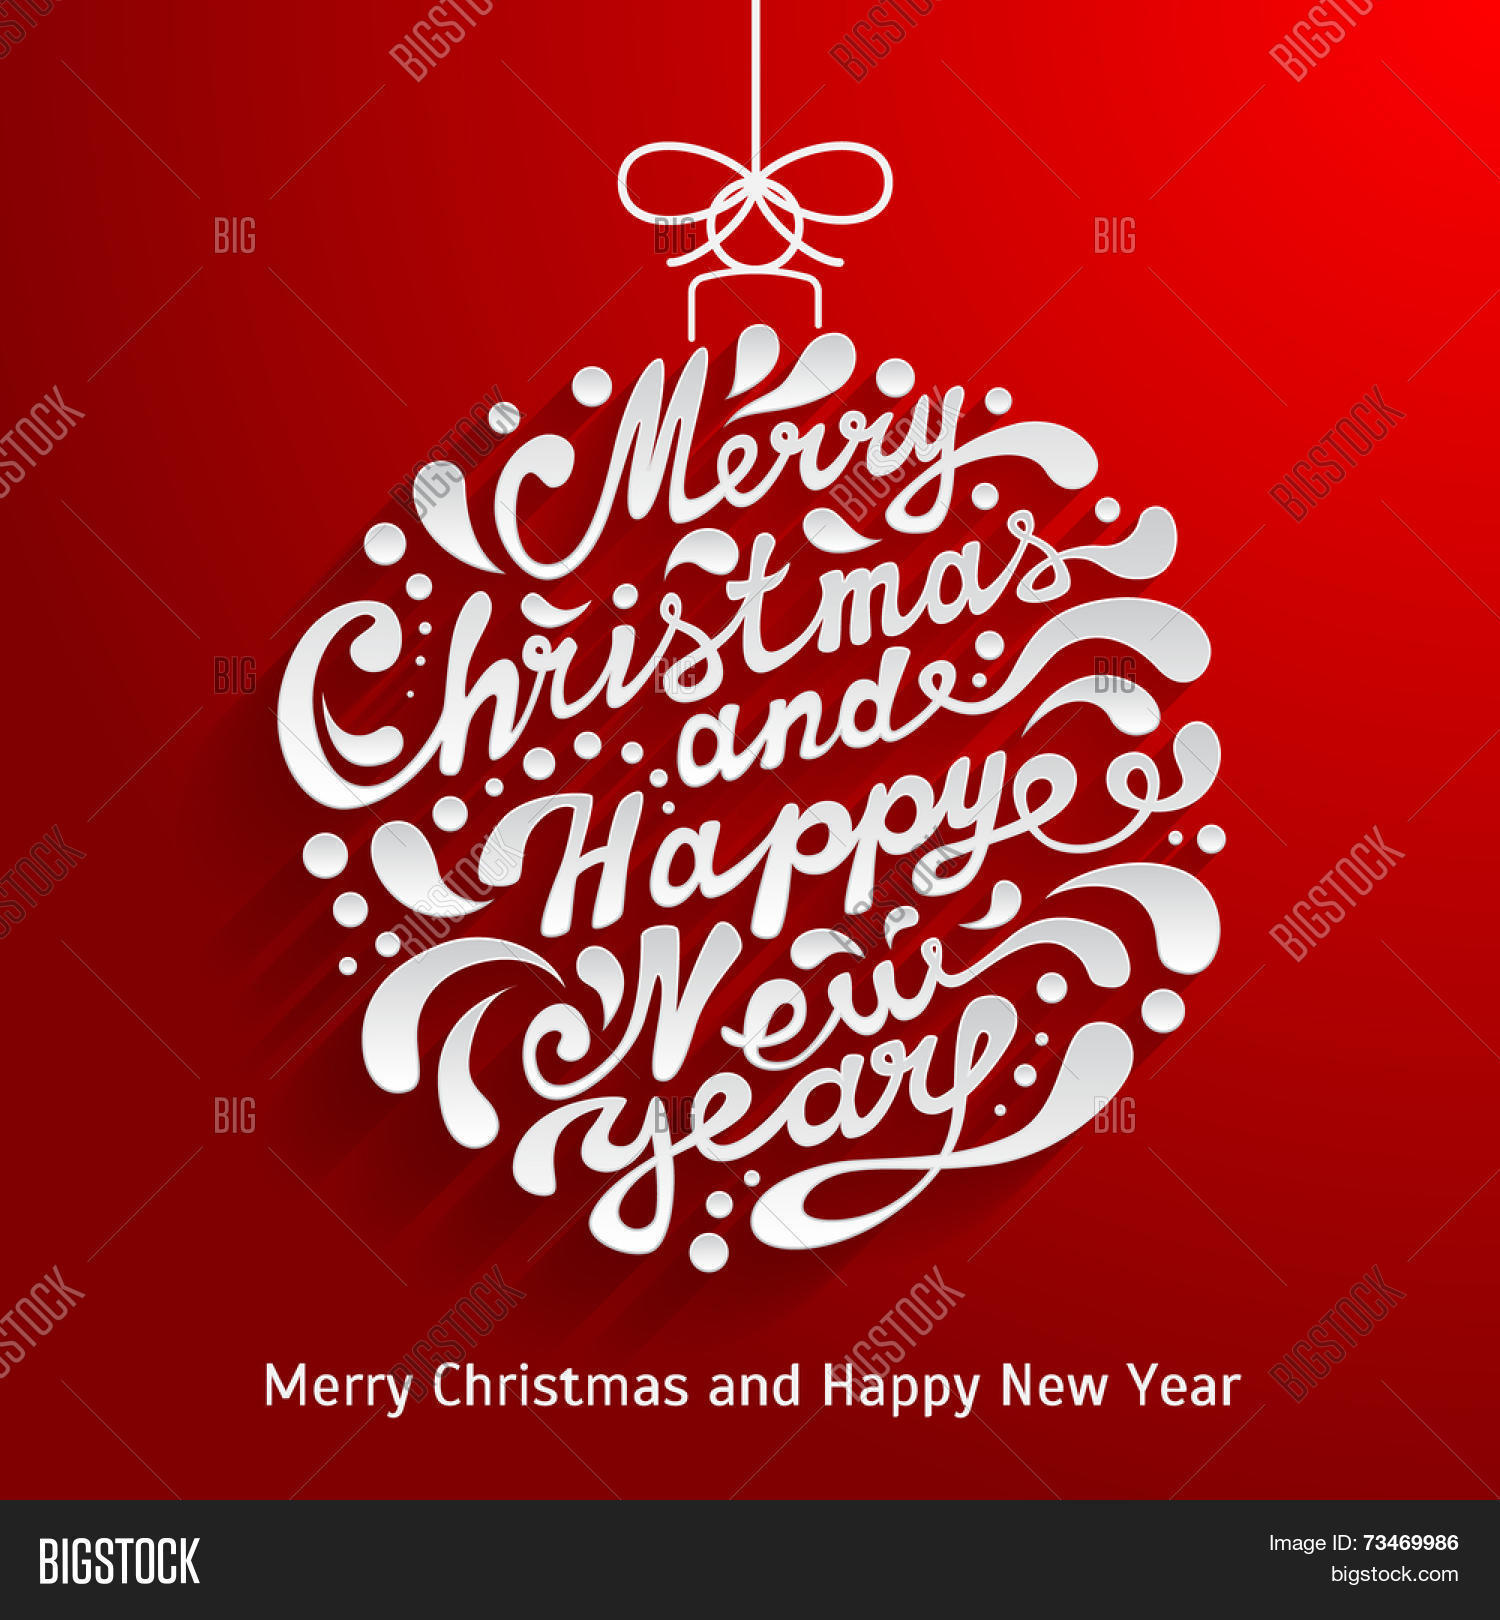 Xmas Greeting Card Vector & Photo (Free Trial) | Bigstock